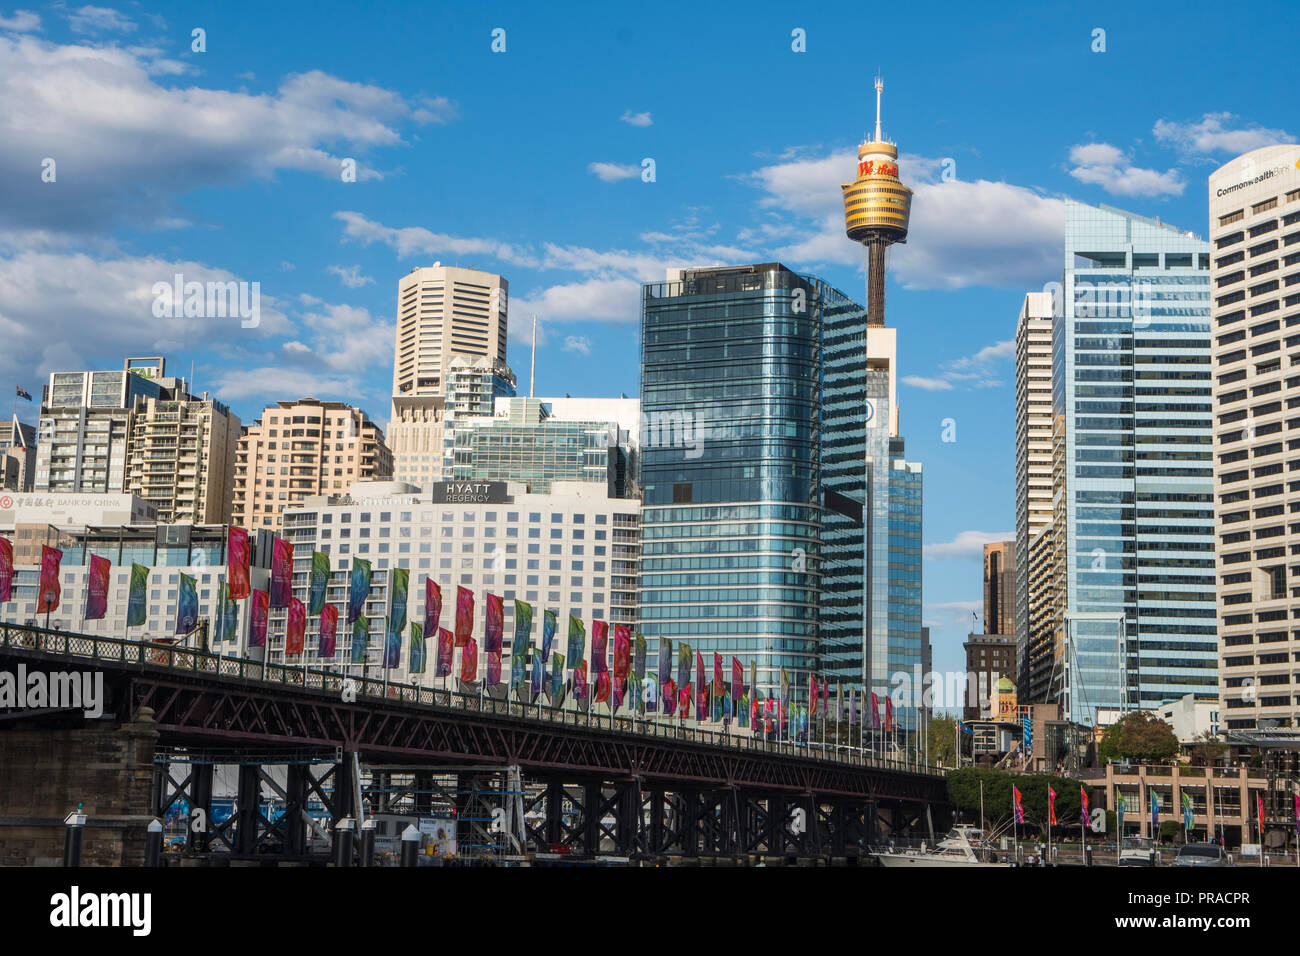 Darling Harbour in Sydney with the Sydney skyscrappers and Sydney Tower in the background. - Stock Image